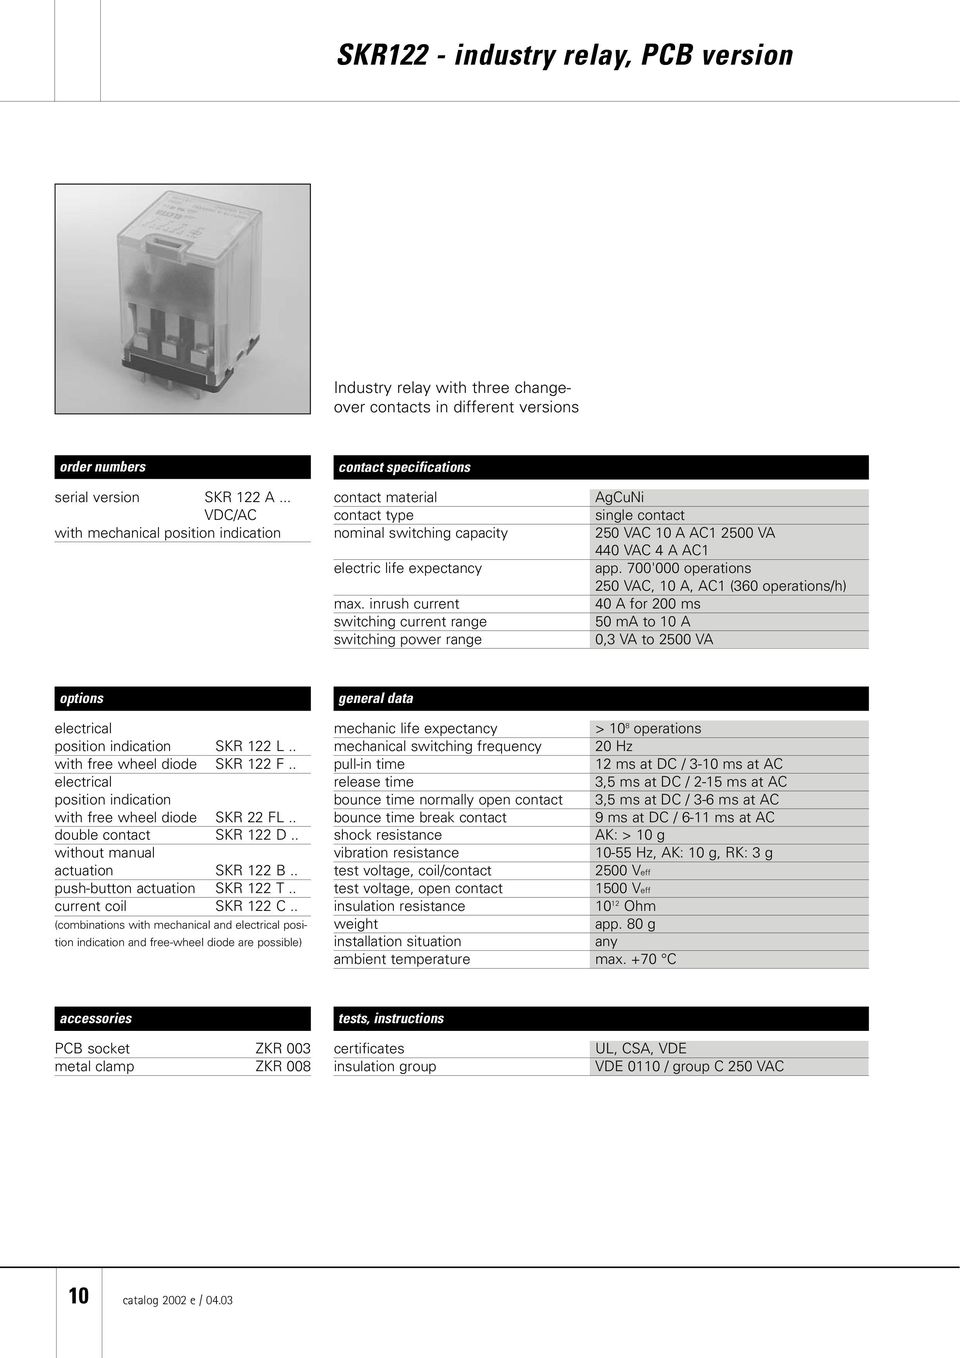 Elesta Elektrotechnik Ag Industry Relays And Accessories Pdf Power Button Relay Inrush Current Switching Range Agcuni Single Contact 50 Vac 0 A Ac